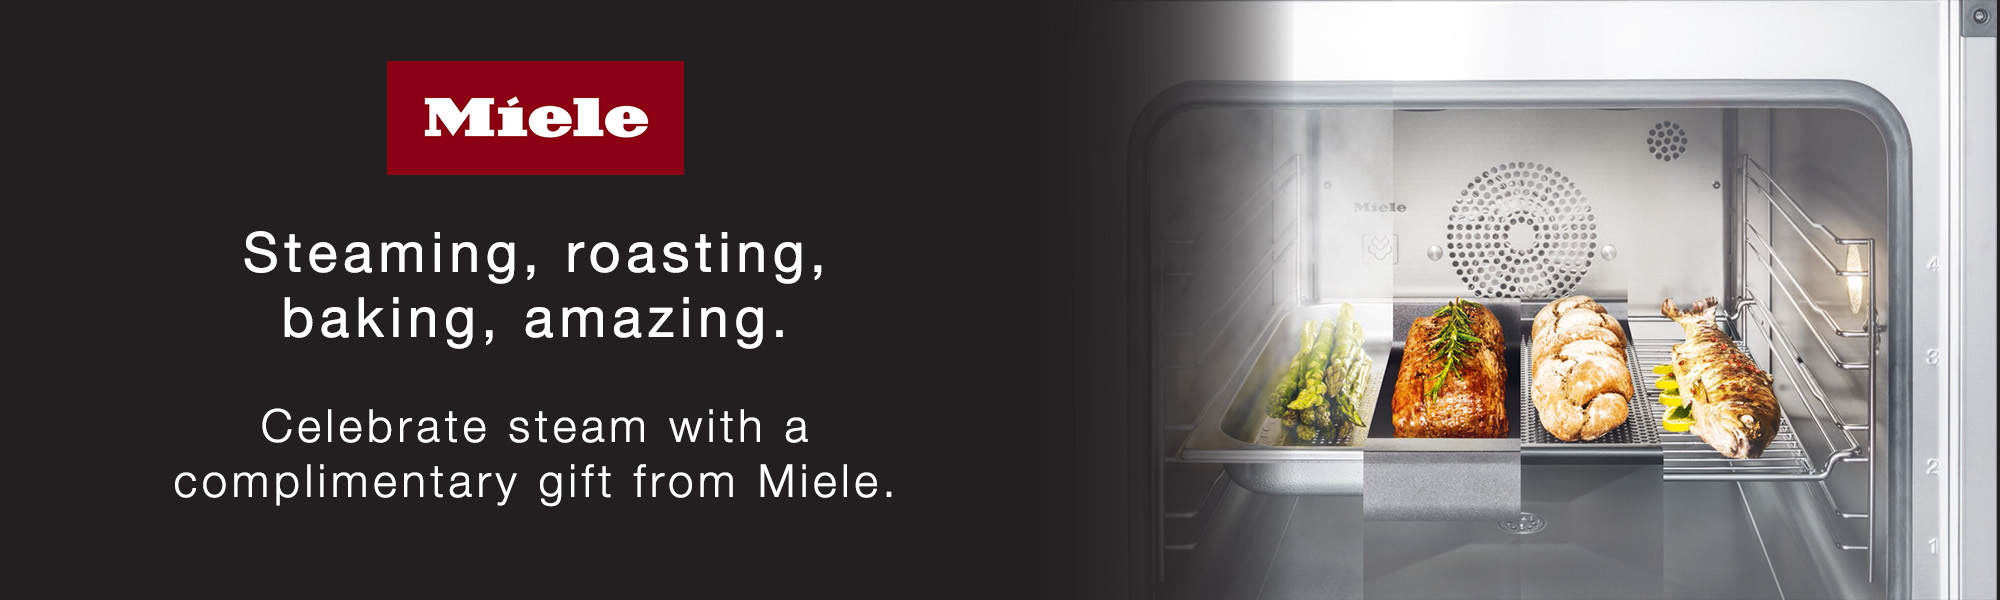 Miele Steam promotion